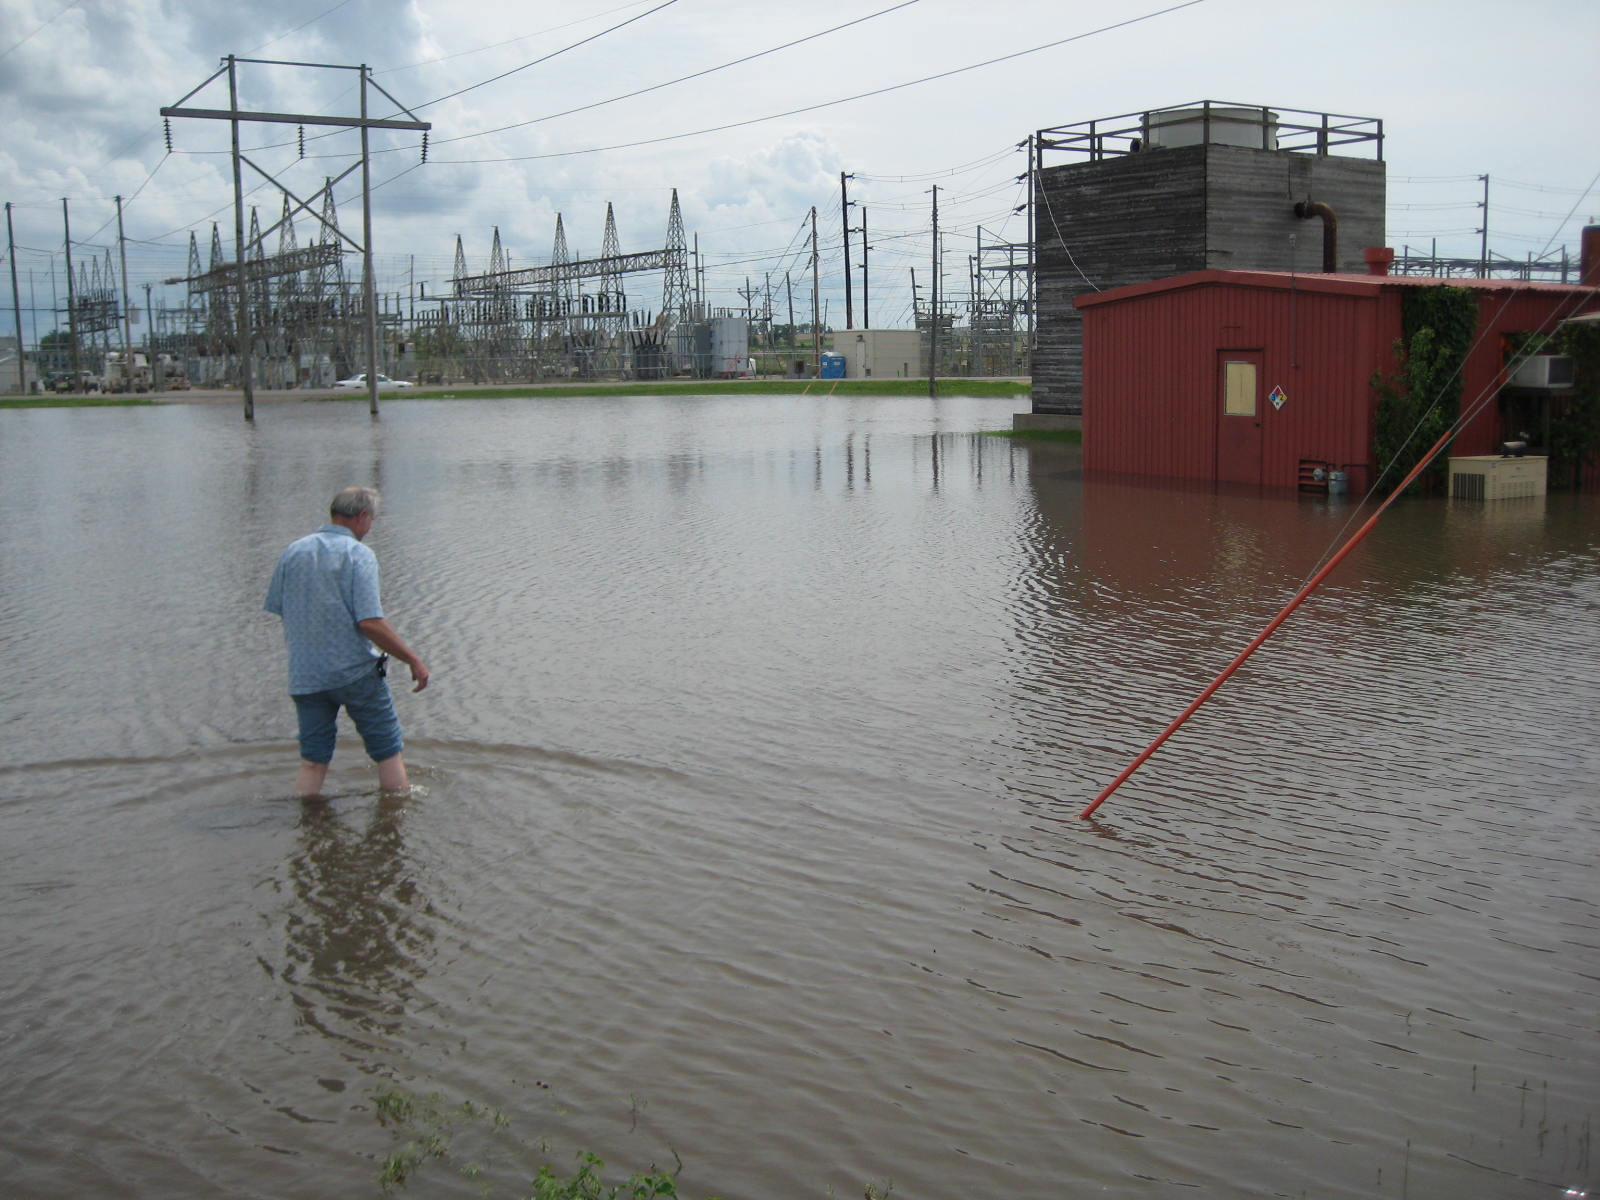 Dave Reese - NWS Des Moines Electronics Systems Analysts treads flooded water from the Iowa River at Marshalltown. The small building at the right is where the Marshalltown NOAA Weather Radio Transmitter is located. There was already about a foot of flood water into the building. Photo taken June 9, 2008 by Ken Podrazik.